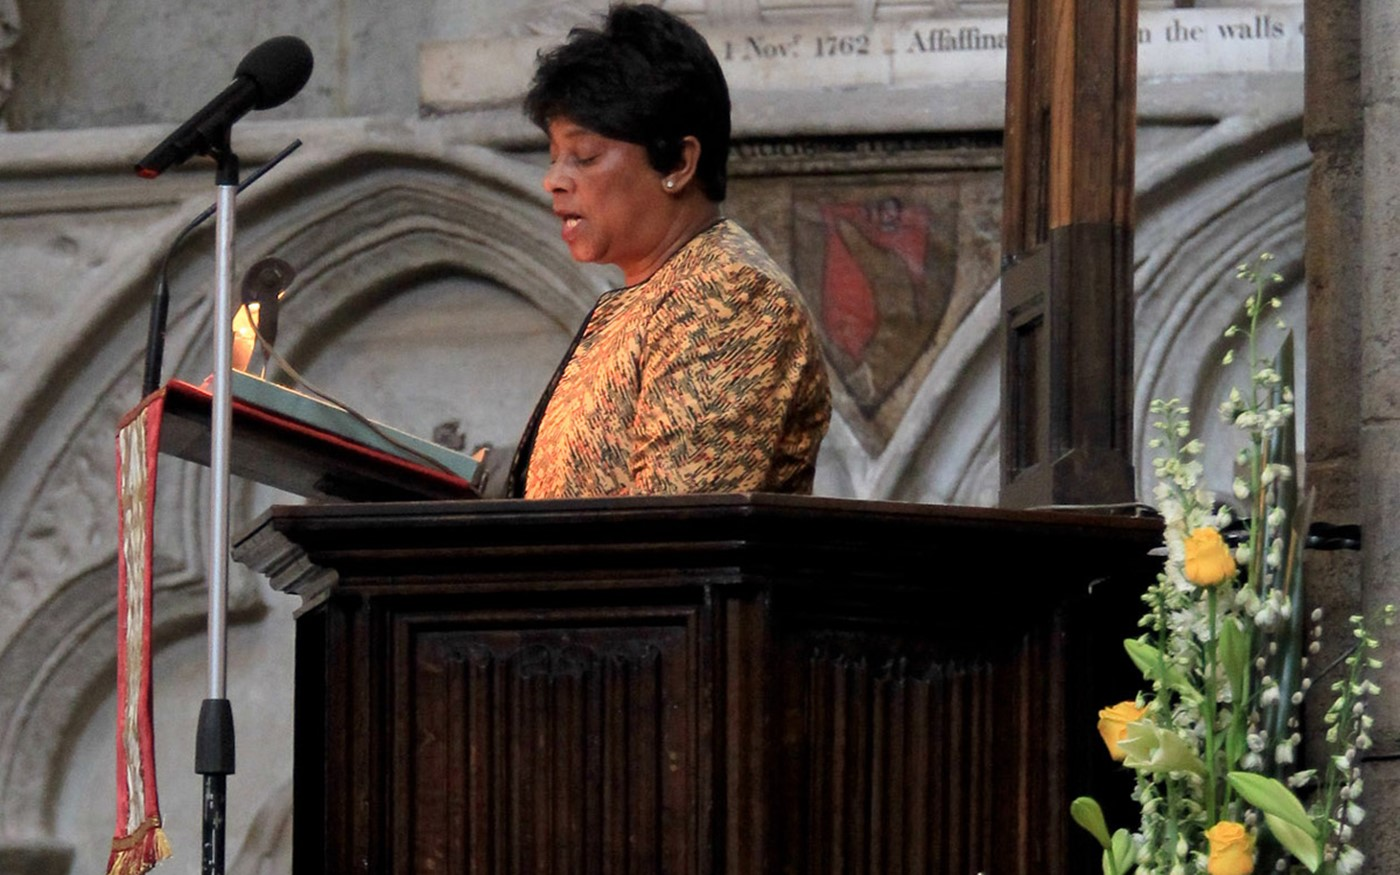 Baroness (Doreen) Lawrence of Clarendon reads Amos 5: 18-24 from the Nave Pulpit